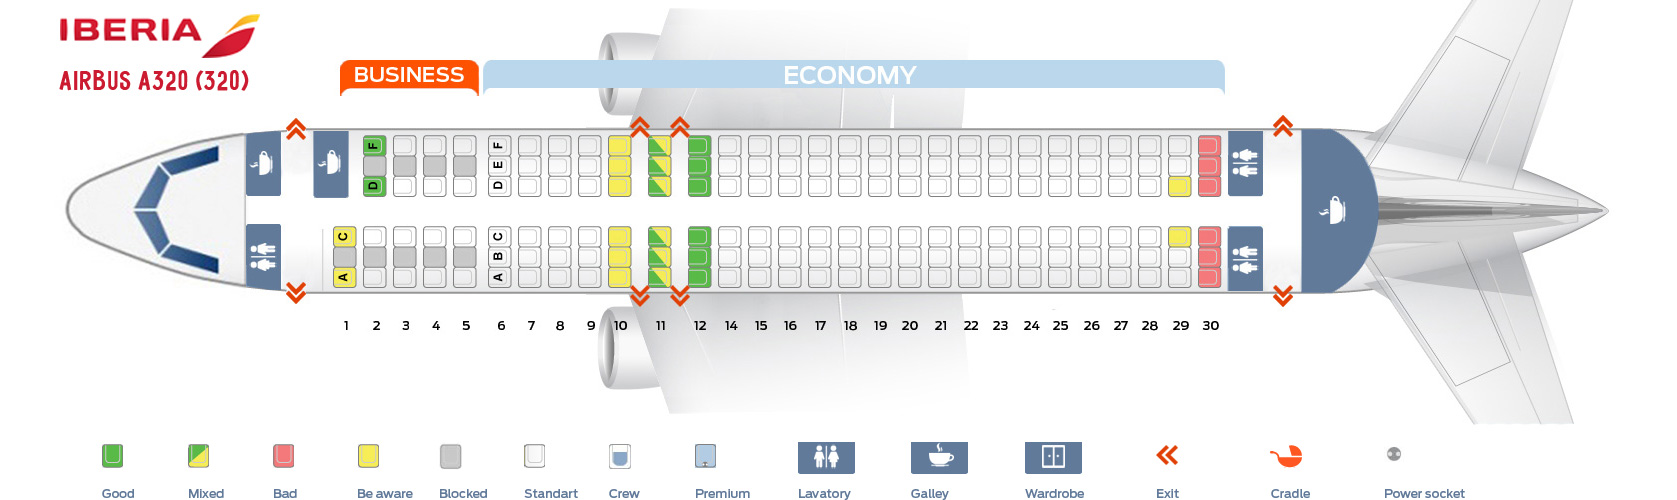 Airbus A320 Seating Plan Alaska | Elcho Table on boeing 777 seat map, virgin a340 seat map, a 320 seat map, airbus a319 seat map, airbus a380-800 seat map, airbus a330-200 seat map, delta airbus 333 seat map, virgin boeing 747-400 seat map, delta md-90 seat map, a320 jet seat map,